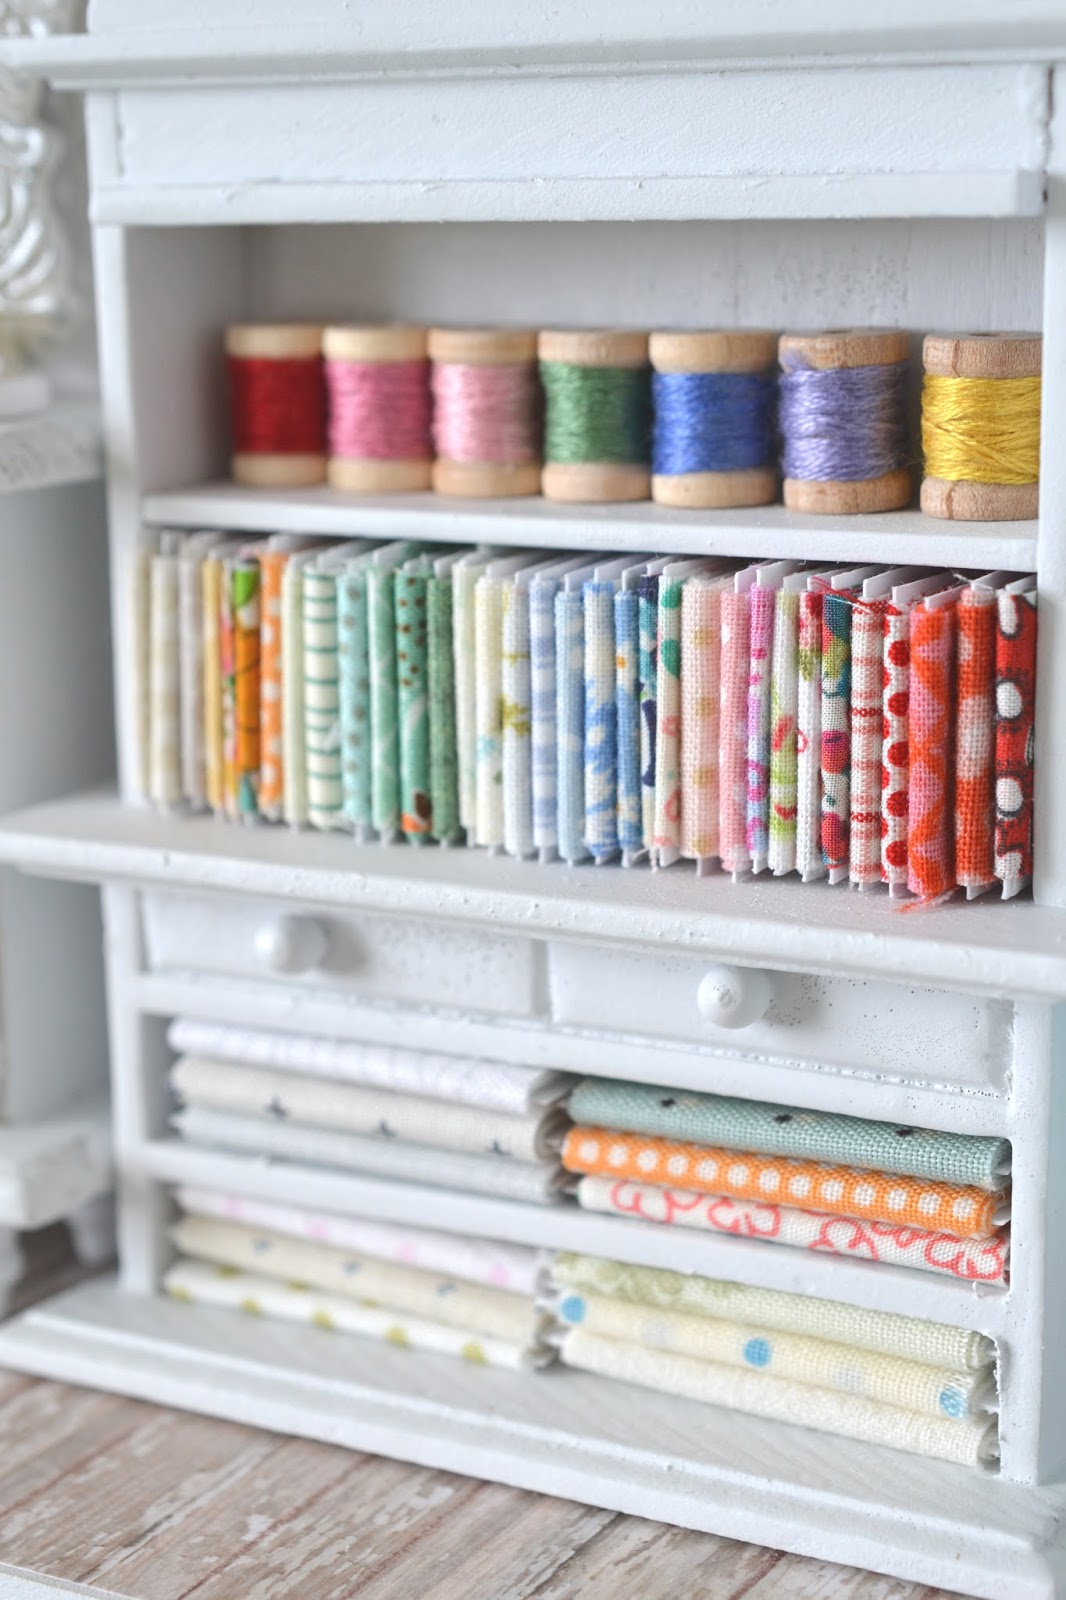 Sewing Room Designs: Tea Rose Home: Big Reveal Of Small Sewing Room ~Part 3